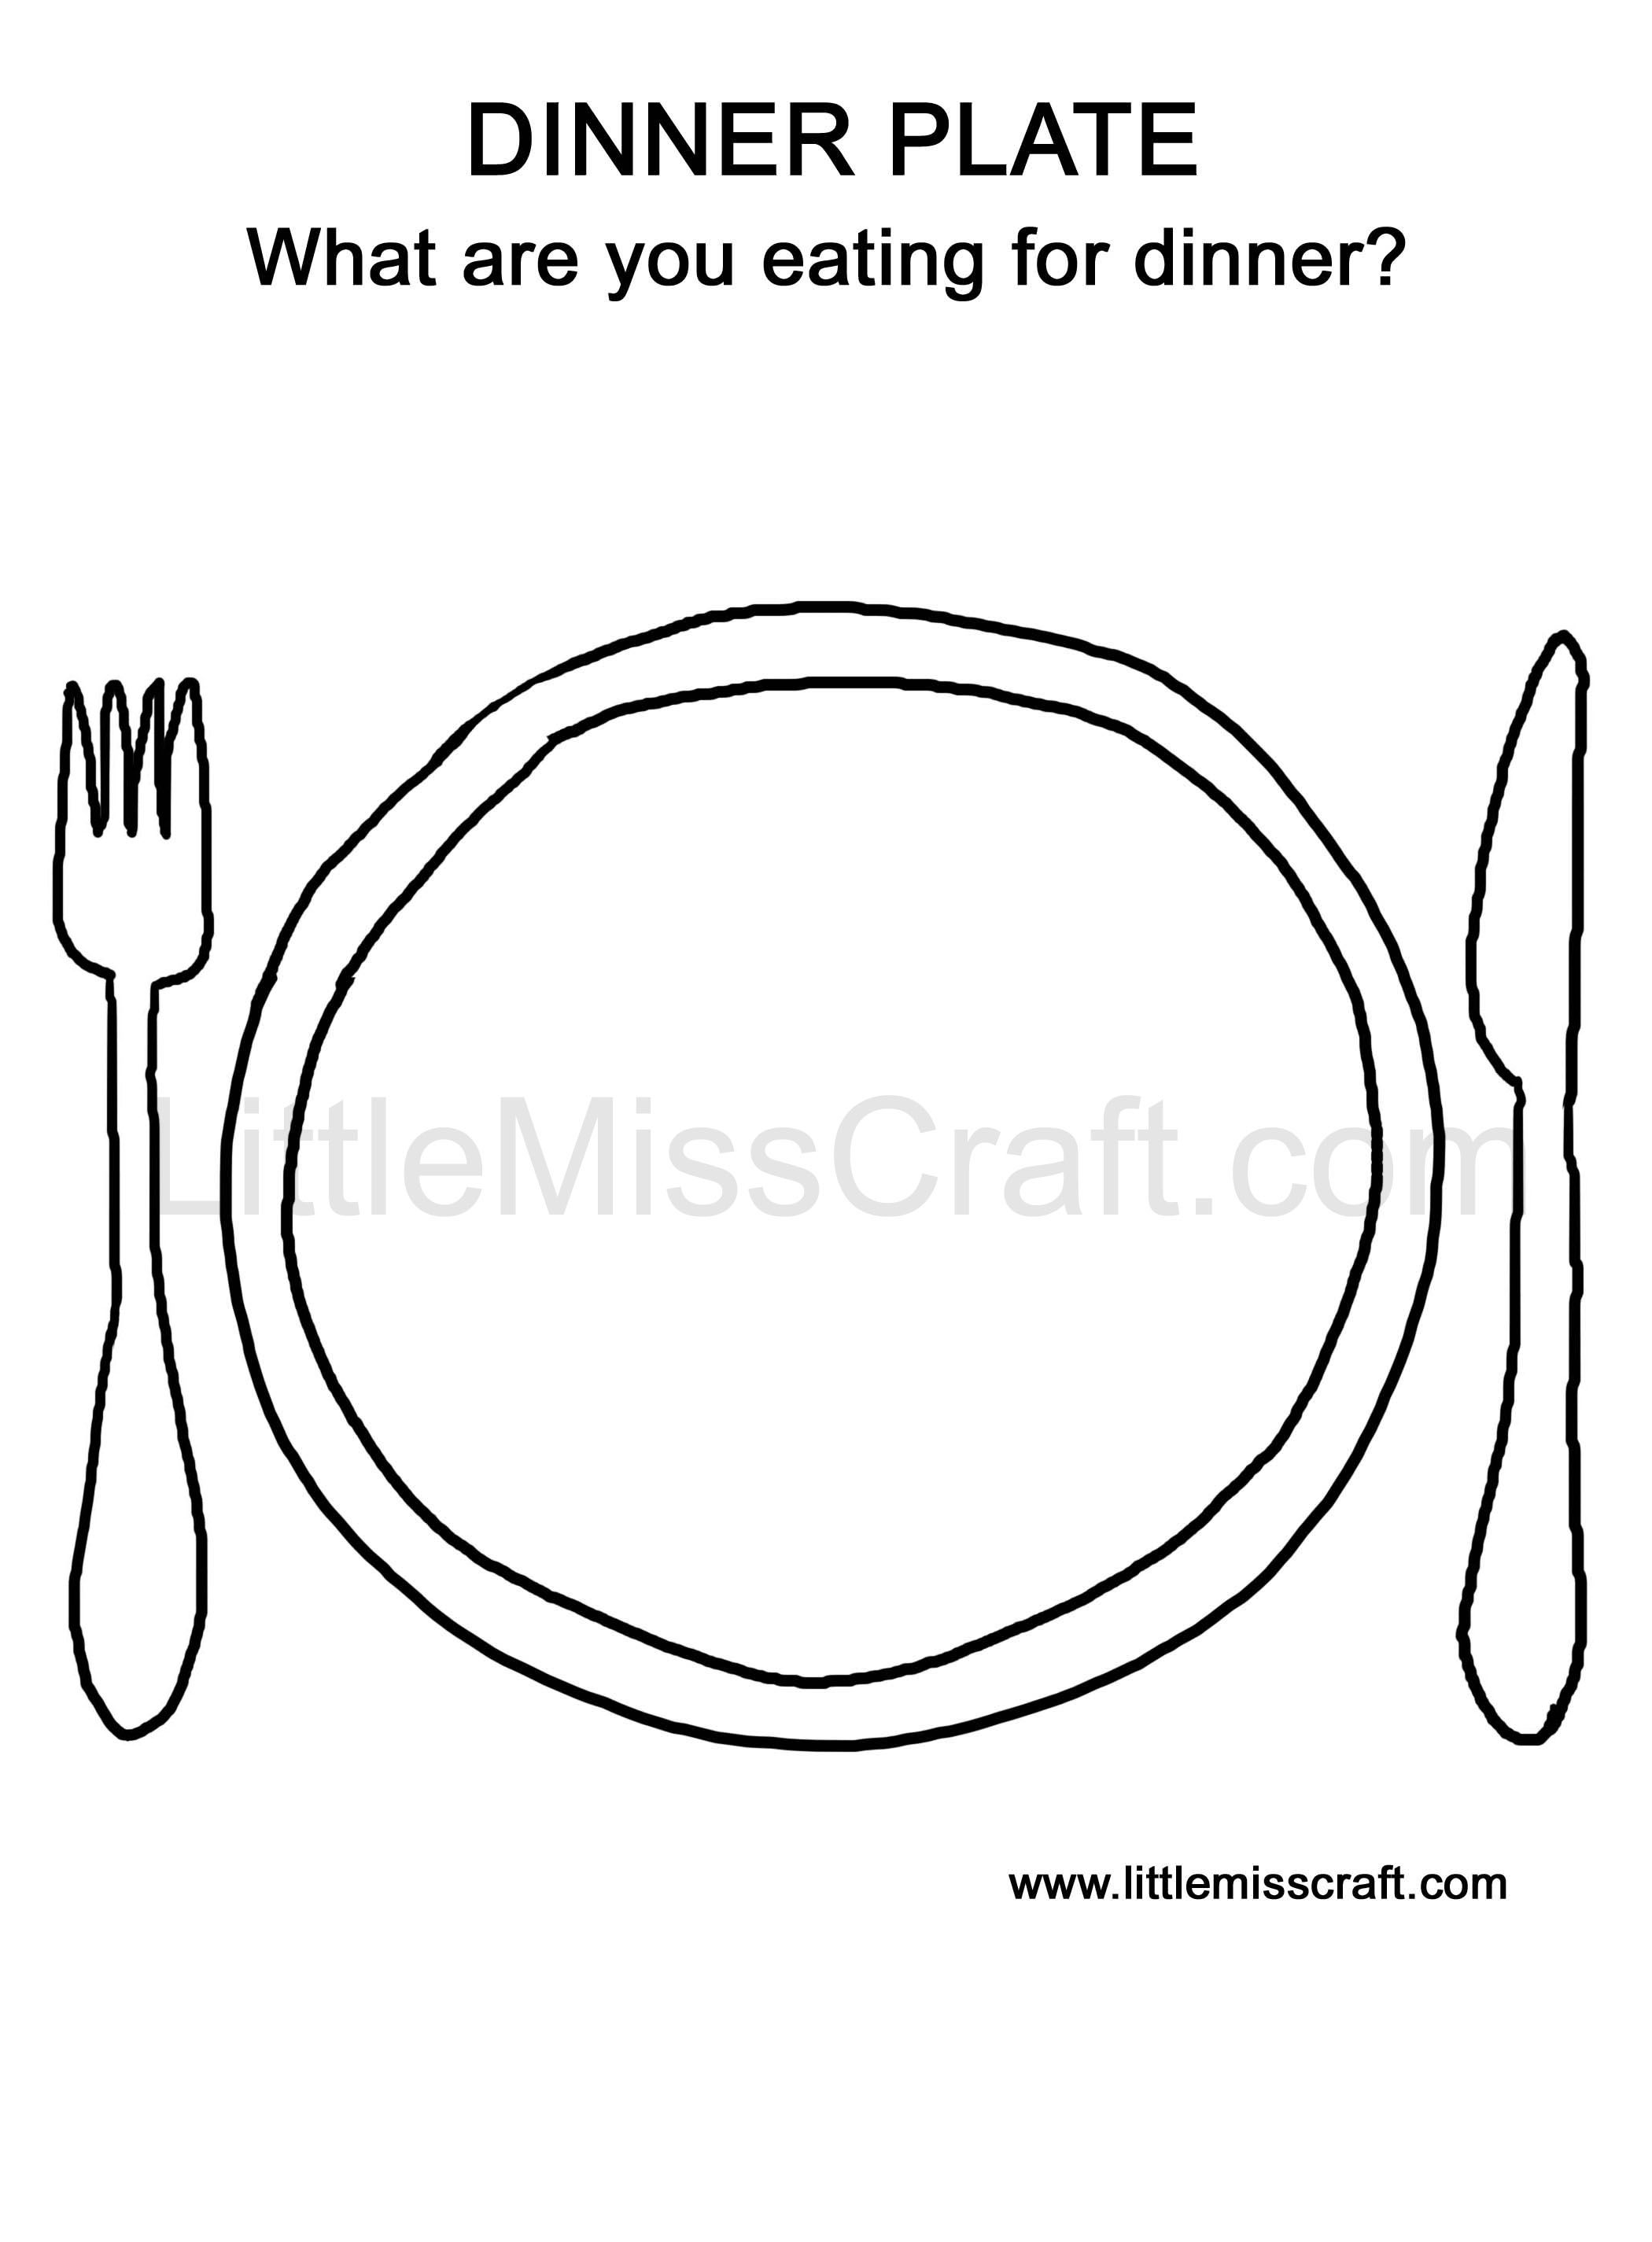 Crafts Dinner Plate Doodle Coloring Page Dinner Plates Doodle